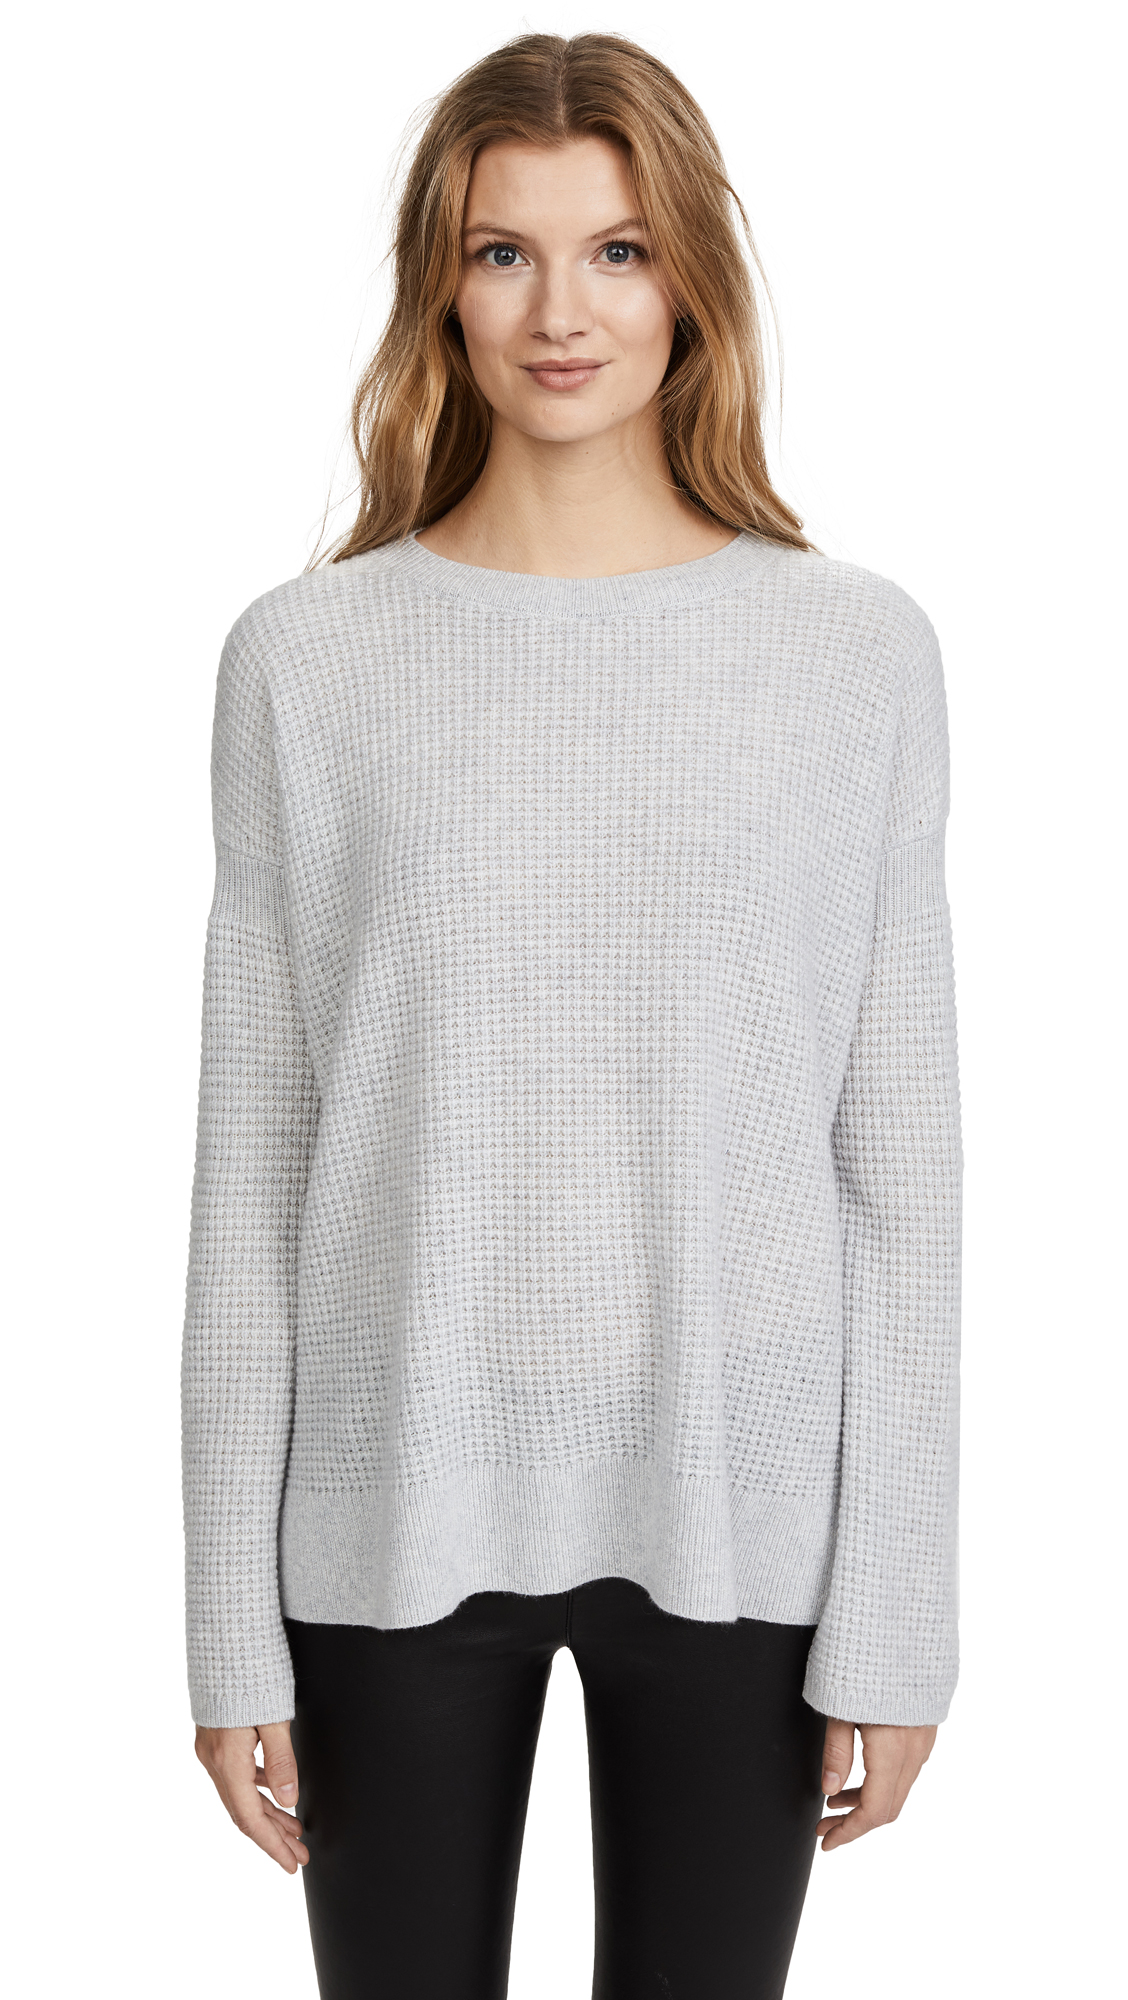 Theory Cinched Sleeve Cashmere Sweater - Whale Grey